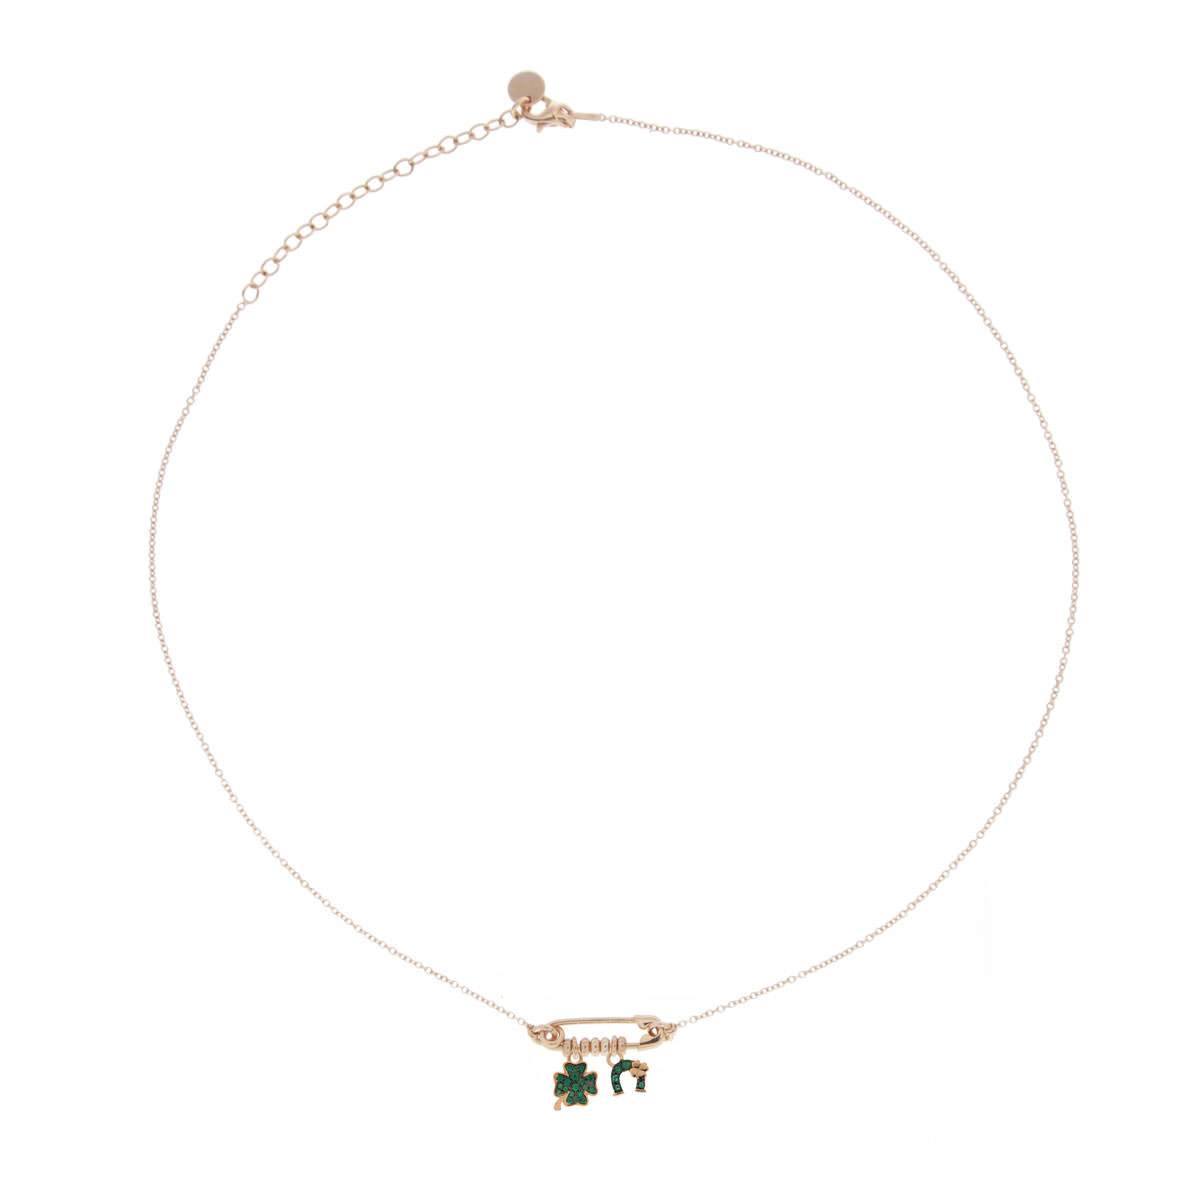 Chokers - Double Pendant and Brooch Choker - Four-leaf Clover/Horseshoe - 1 | Rue des Mille